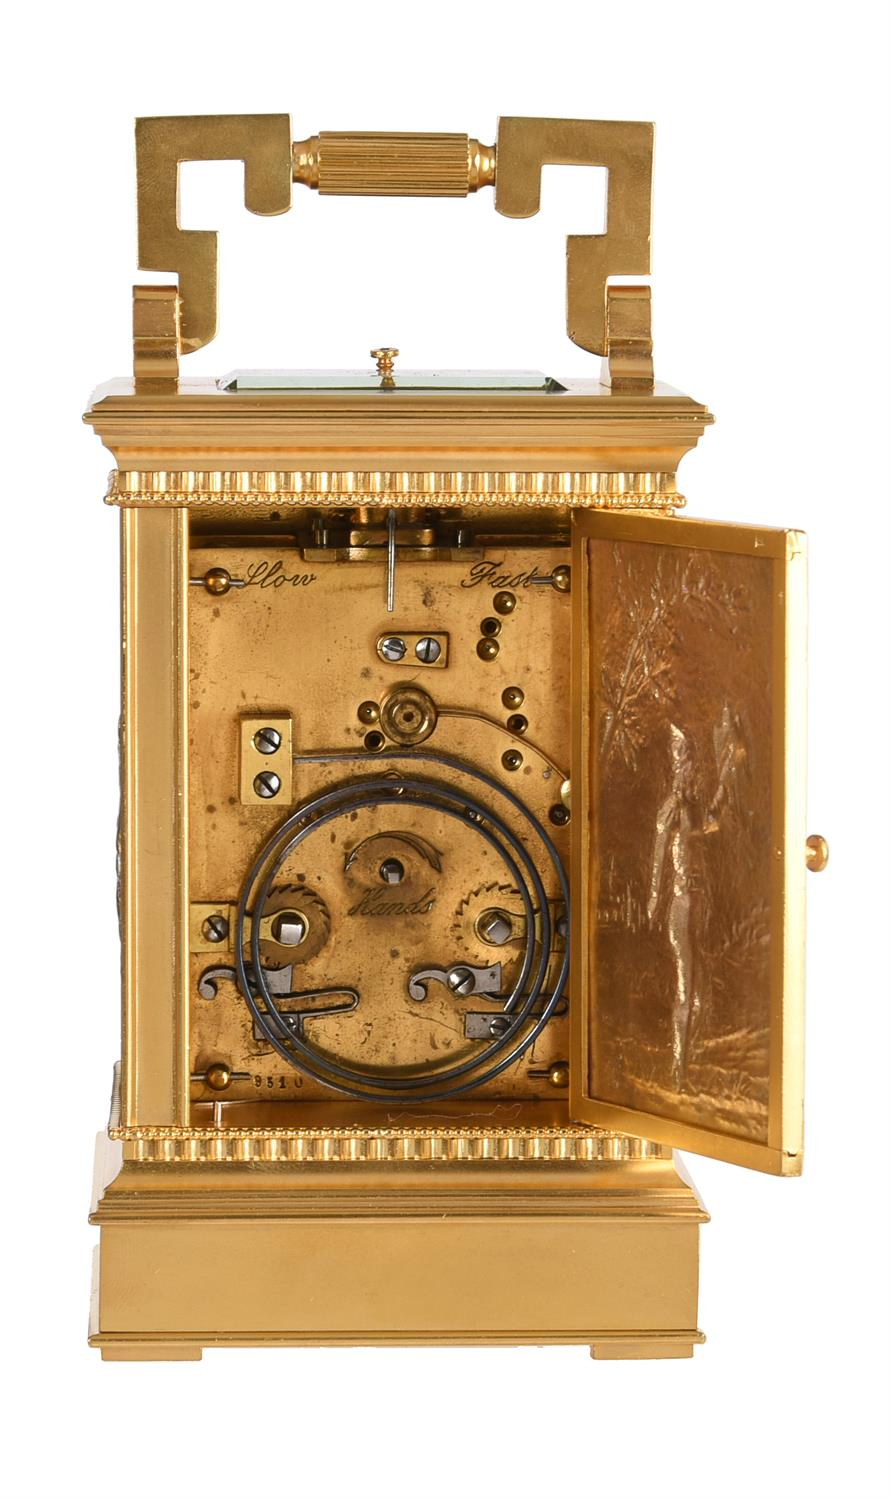 A fine French gilt brass carriage clock with multi-colour relief cast panels and push-button repeat - Image 7 of 7